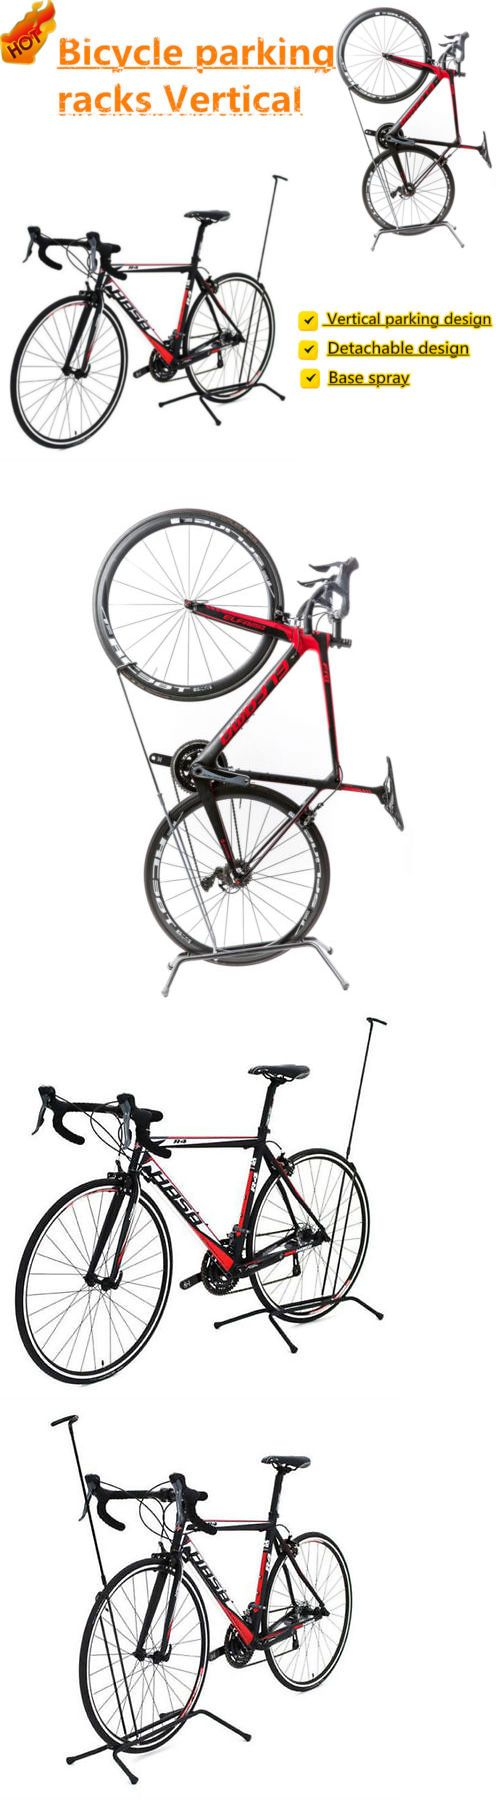 Bicycle Stands and Storage 158997: Mtb Bike Parking Racks Vertical Floor Stand Holder Detachable Bicycle Portable ! BUY IT NOW ONLY: $44.5